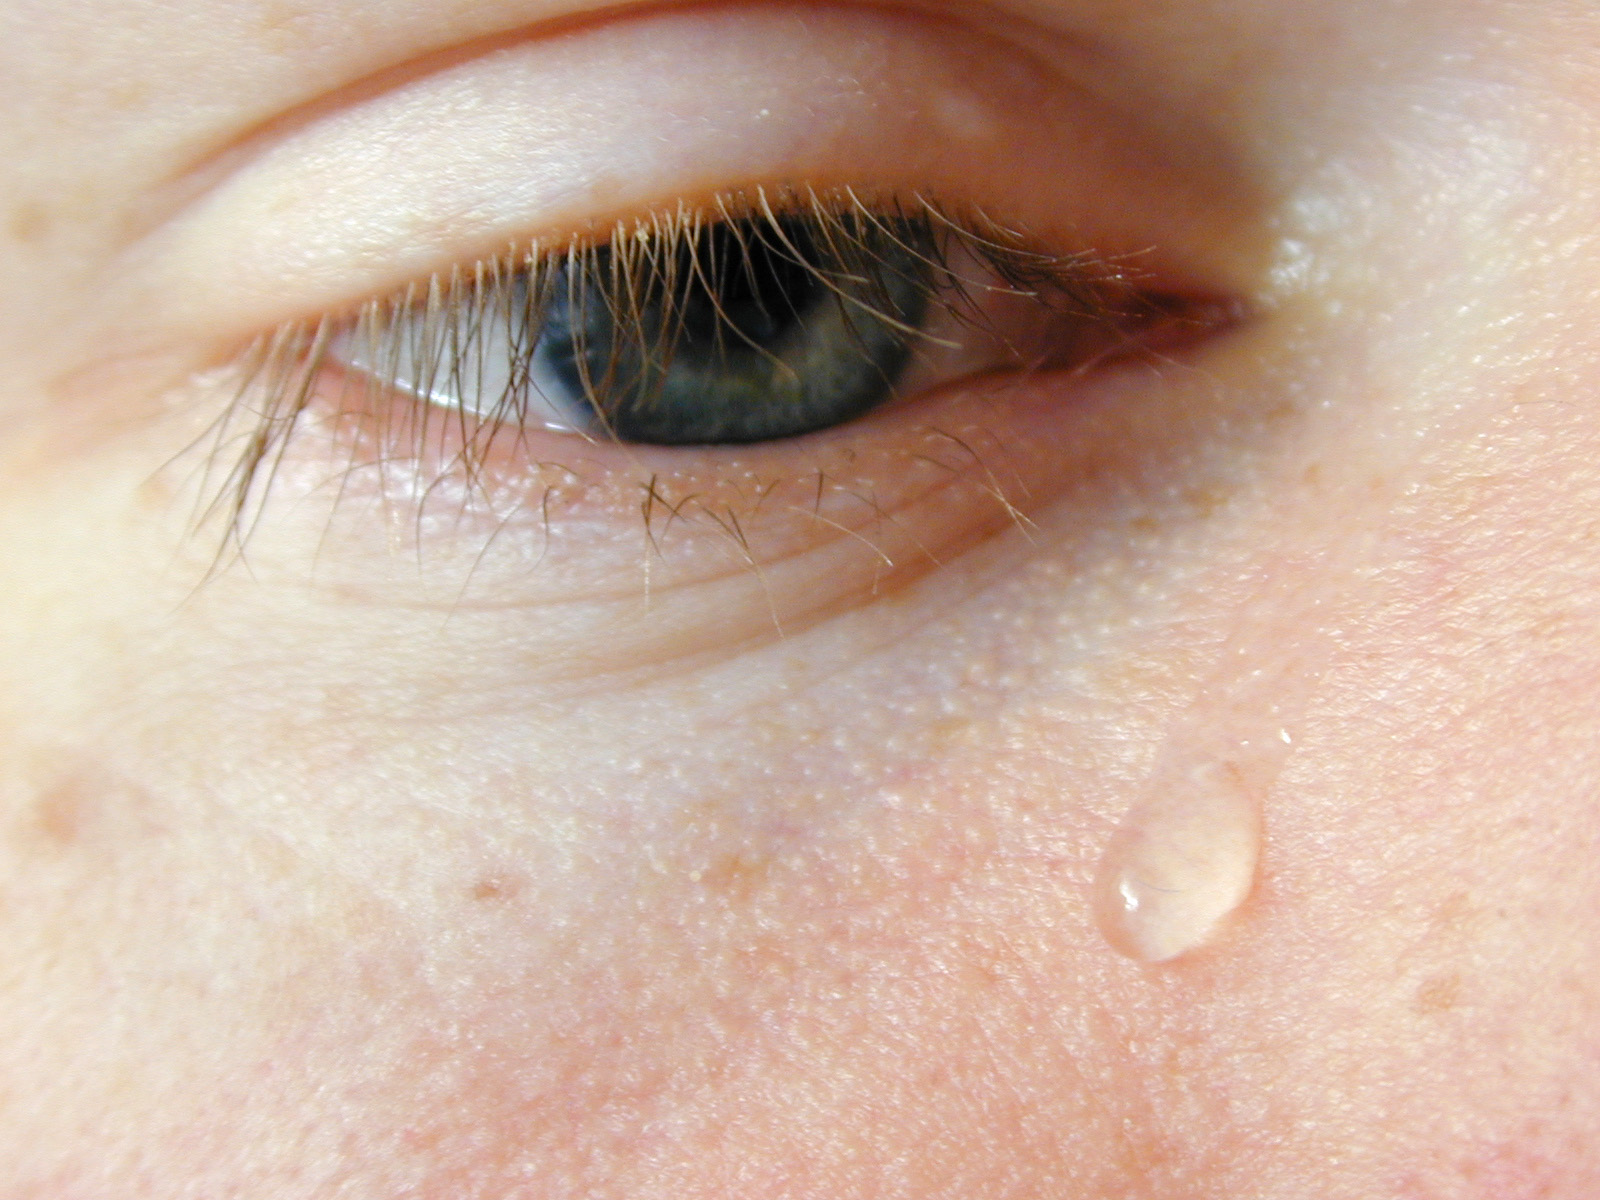 Free Image Of Sad Person Crying With Tear Drop On Cheek